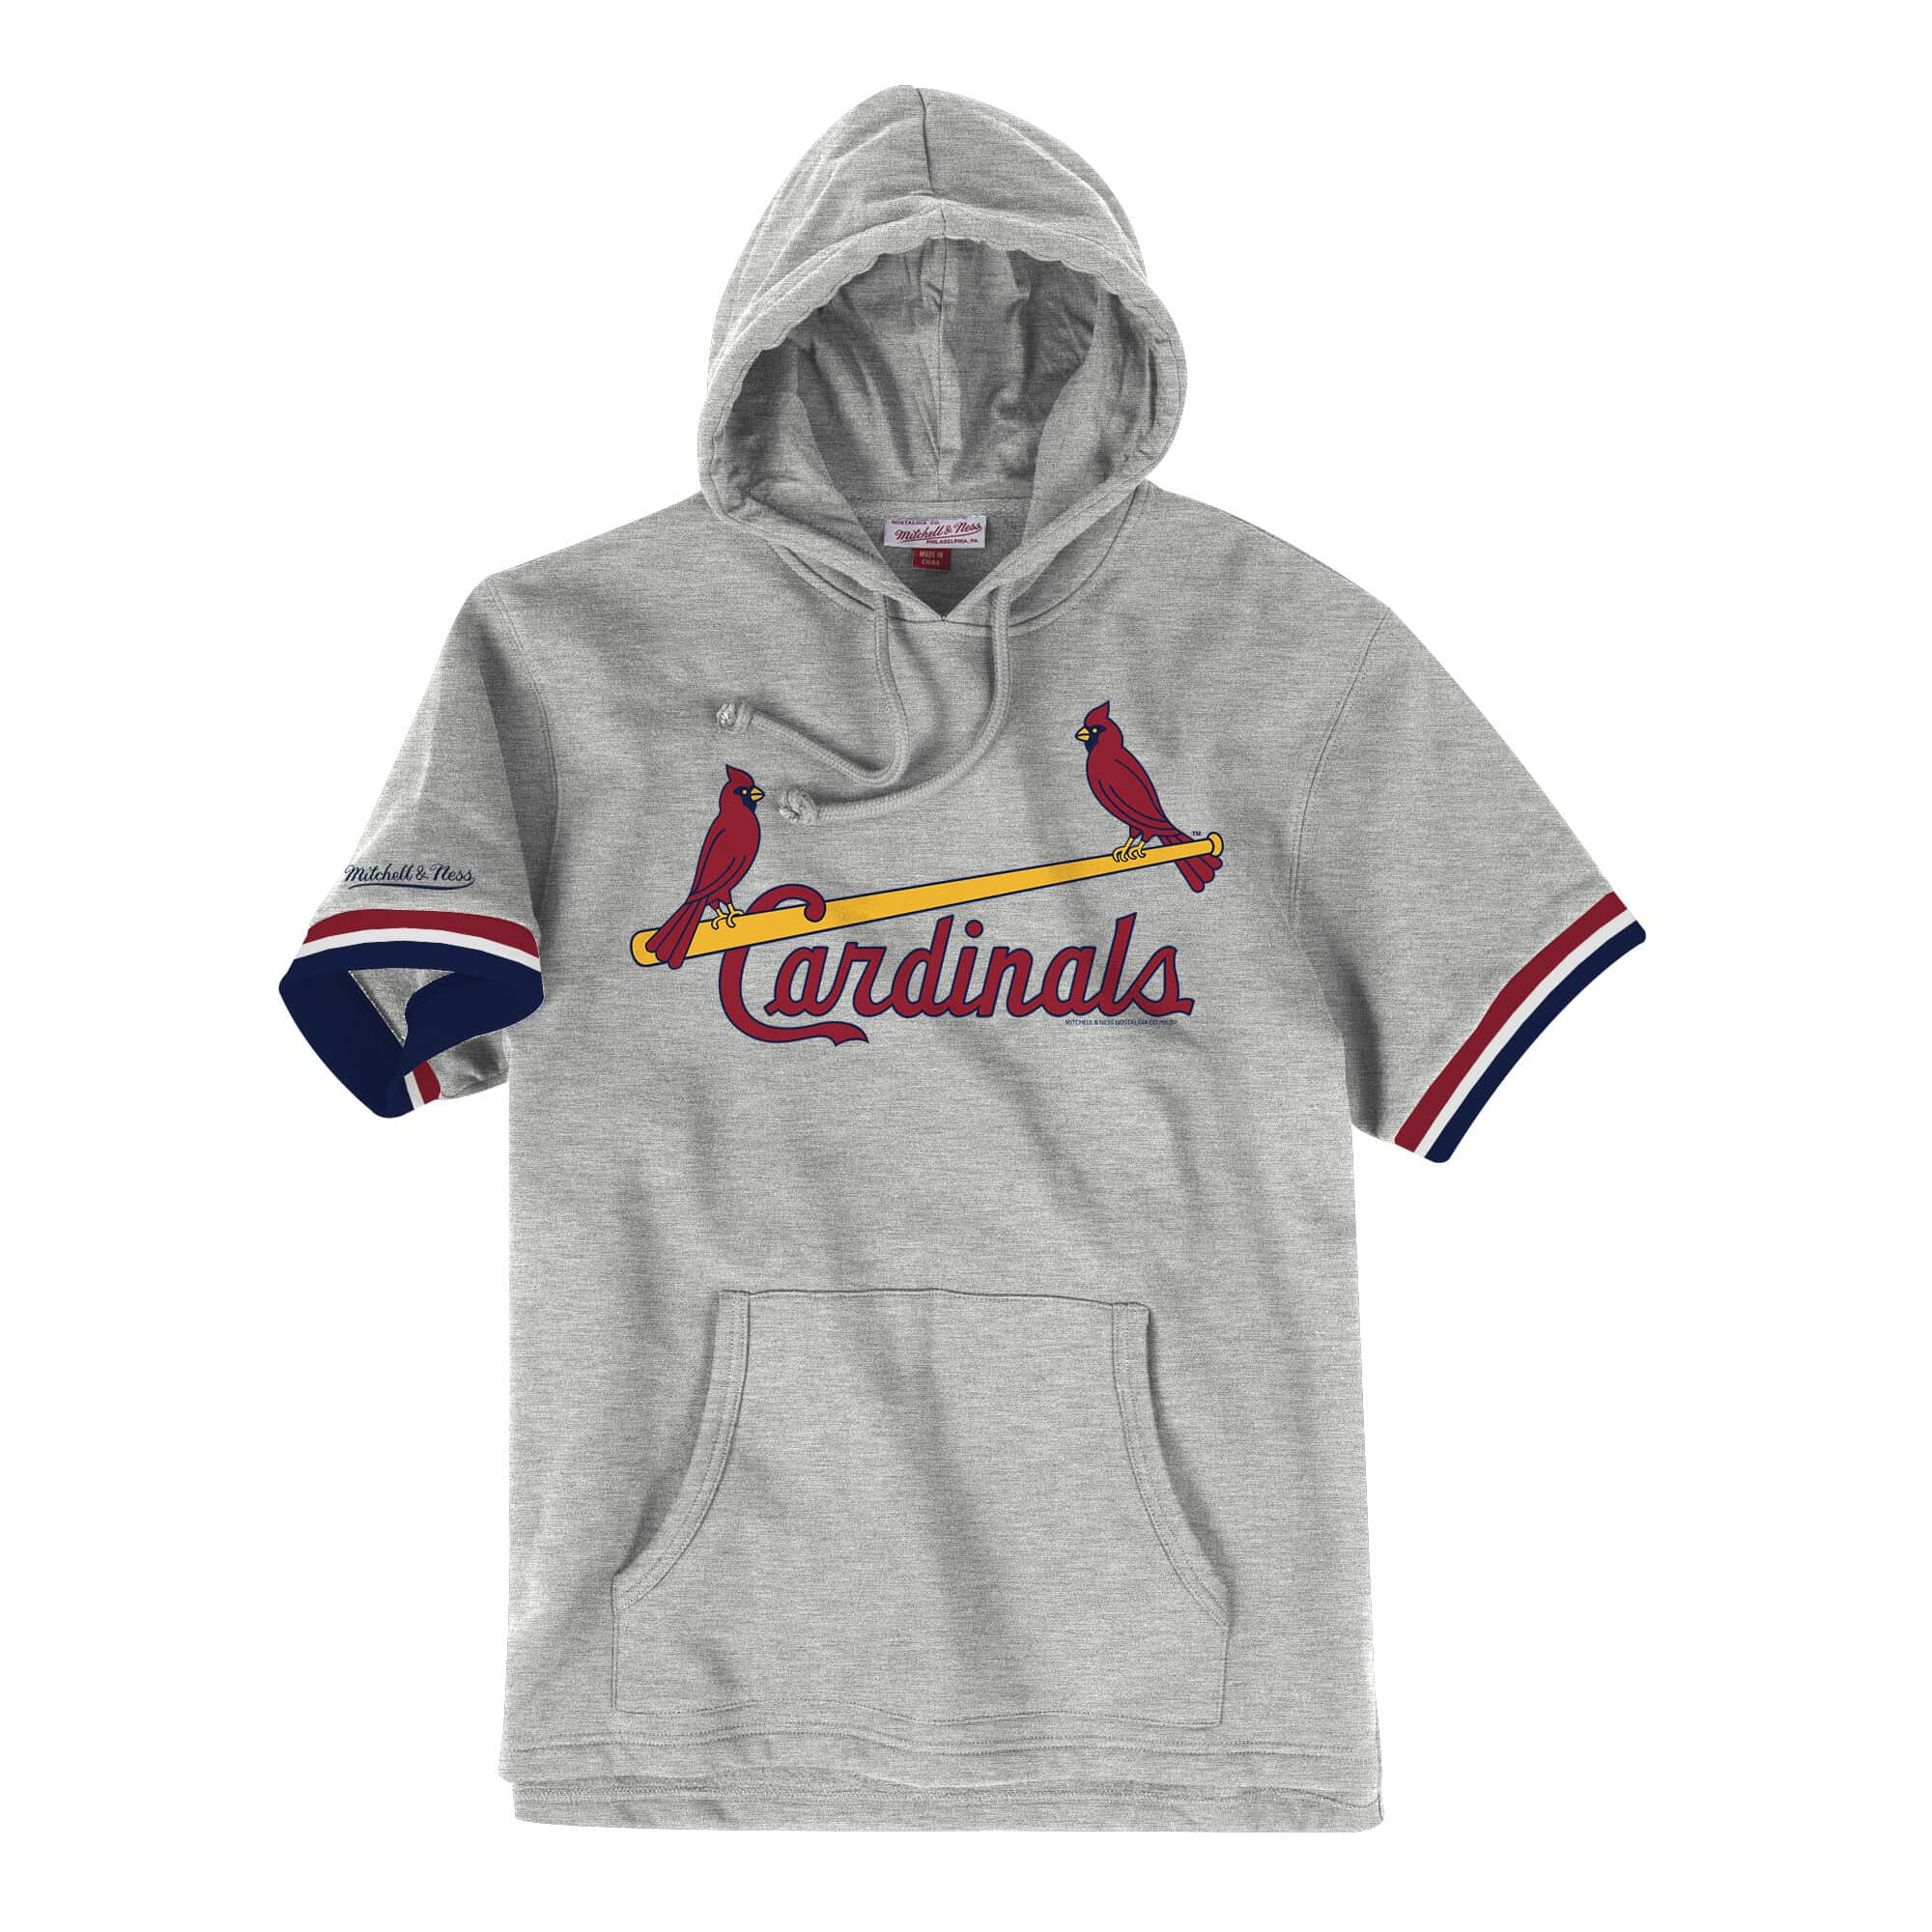 French Terry Short Sleeve Hoody St. Louis Cardinals